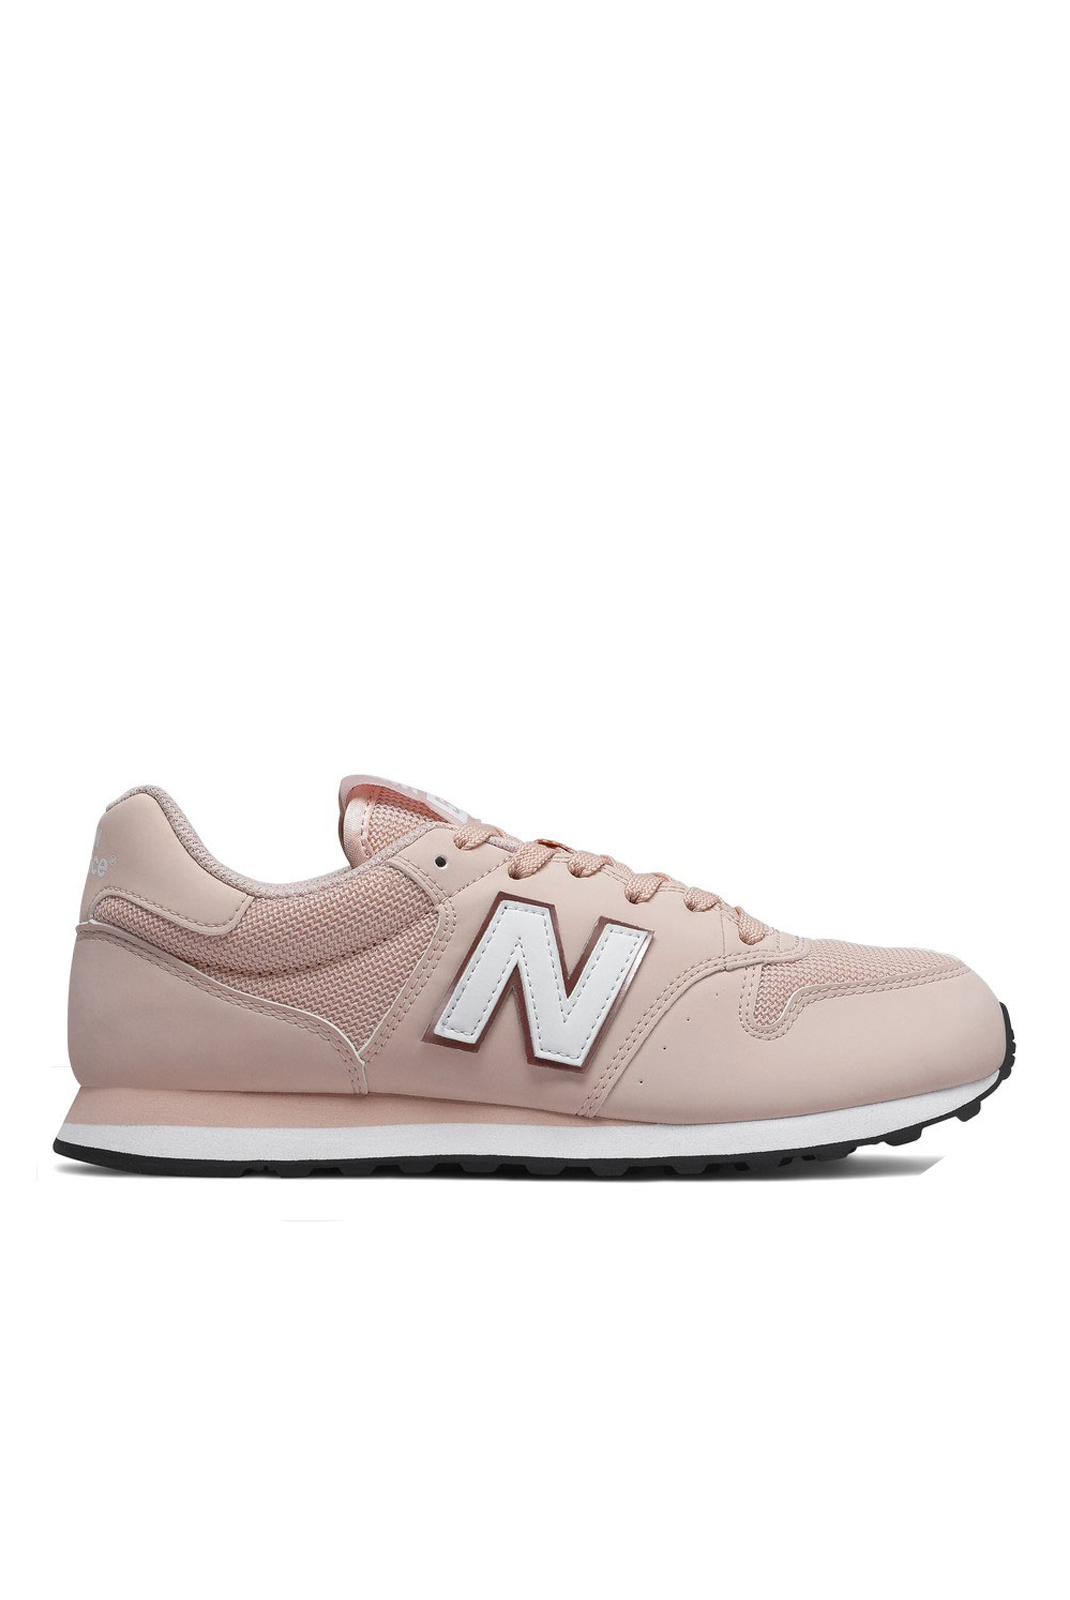 Baskets / Sneakers  New balance GW500HHE he